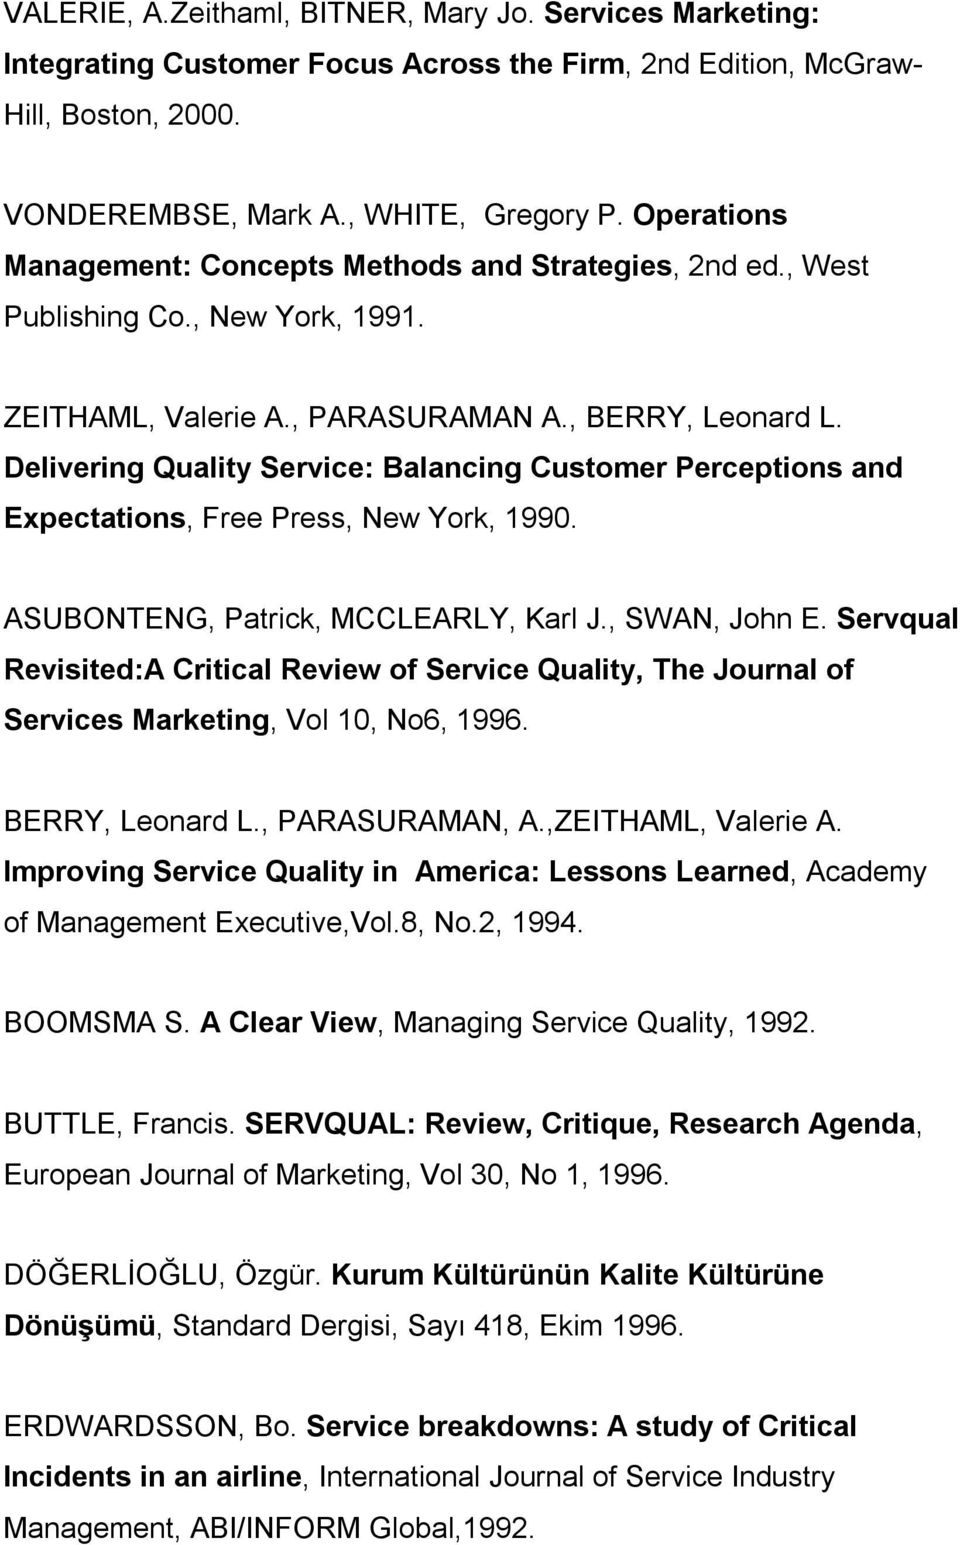 Delivering Quality Service: Balancing Customer Perceptions and Expectations, Free Press, New York, 1990. ASUBONTENG, Patrick, MCCLEARLY, Karl J., SWAN, John E.